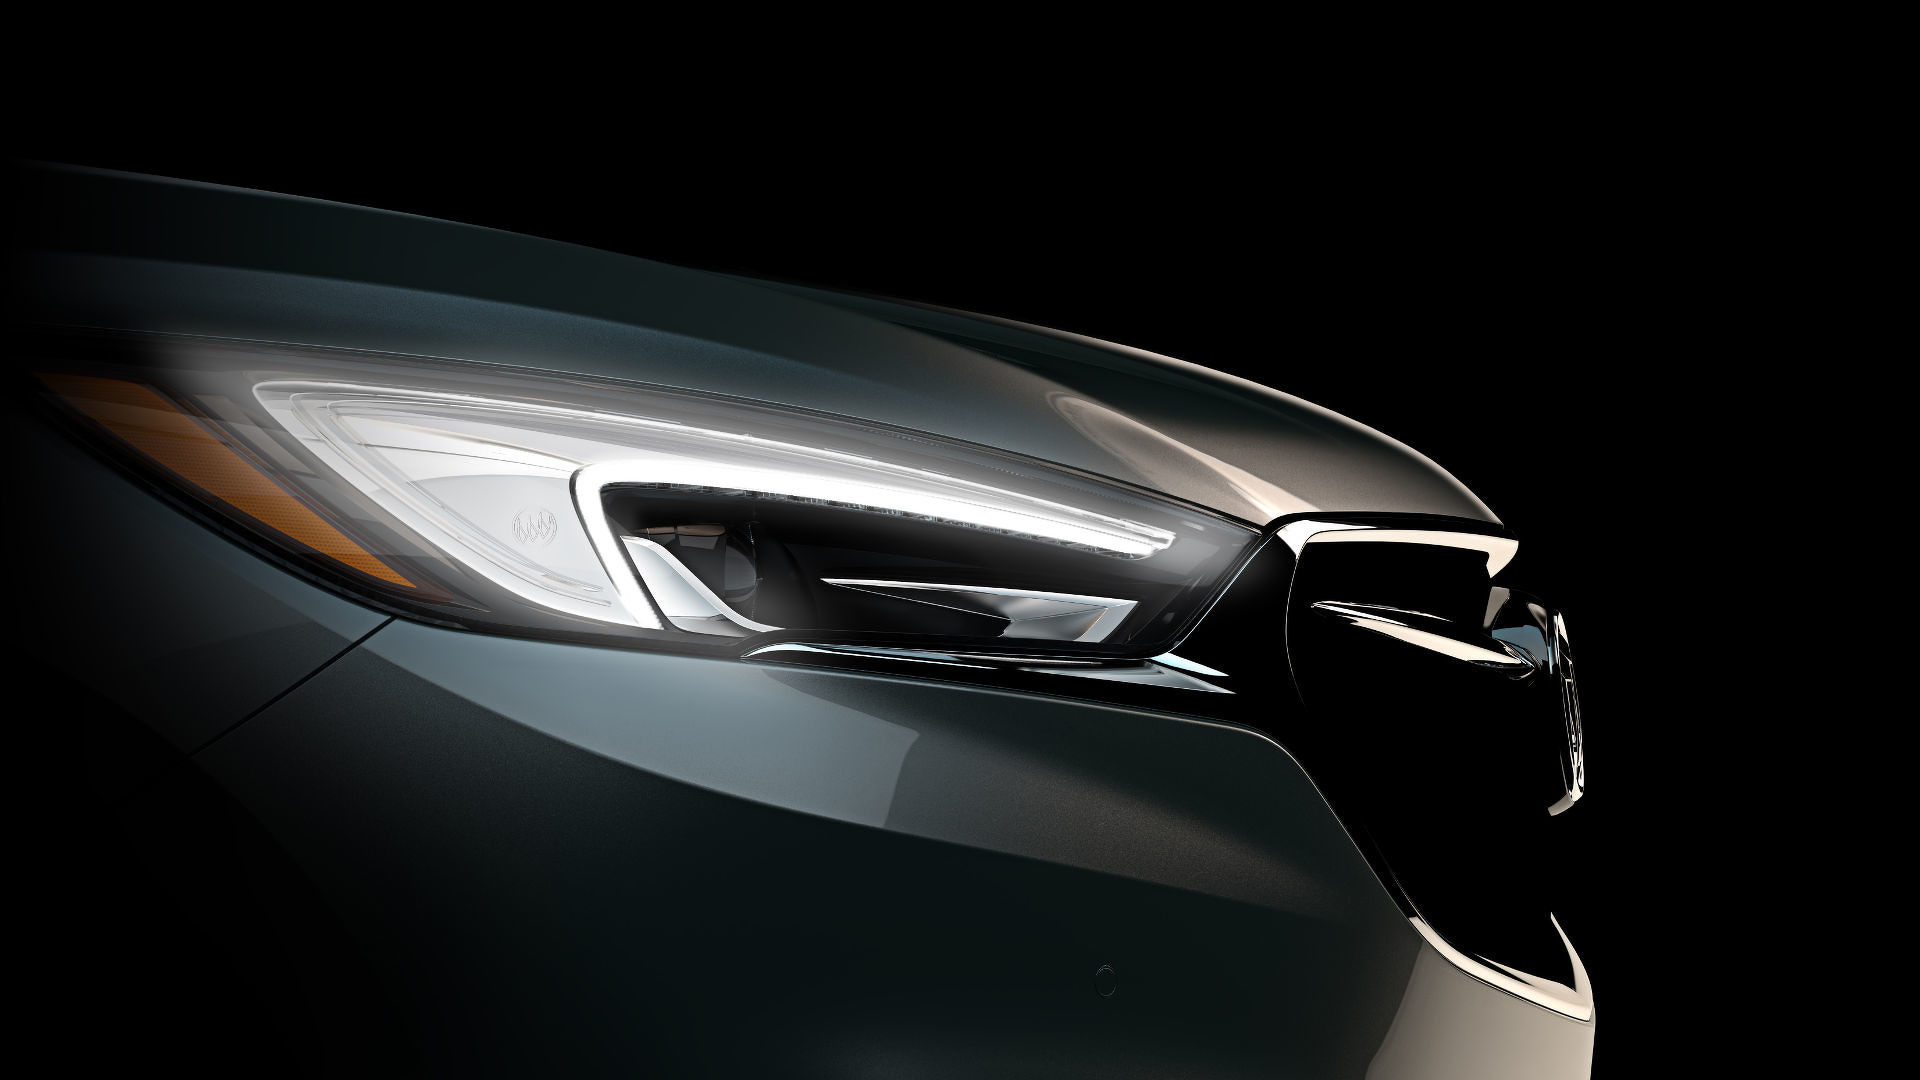 Buick Releases Teaser Image 2018 Enclave To Debut At 2017 New